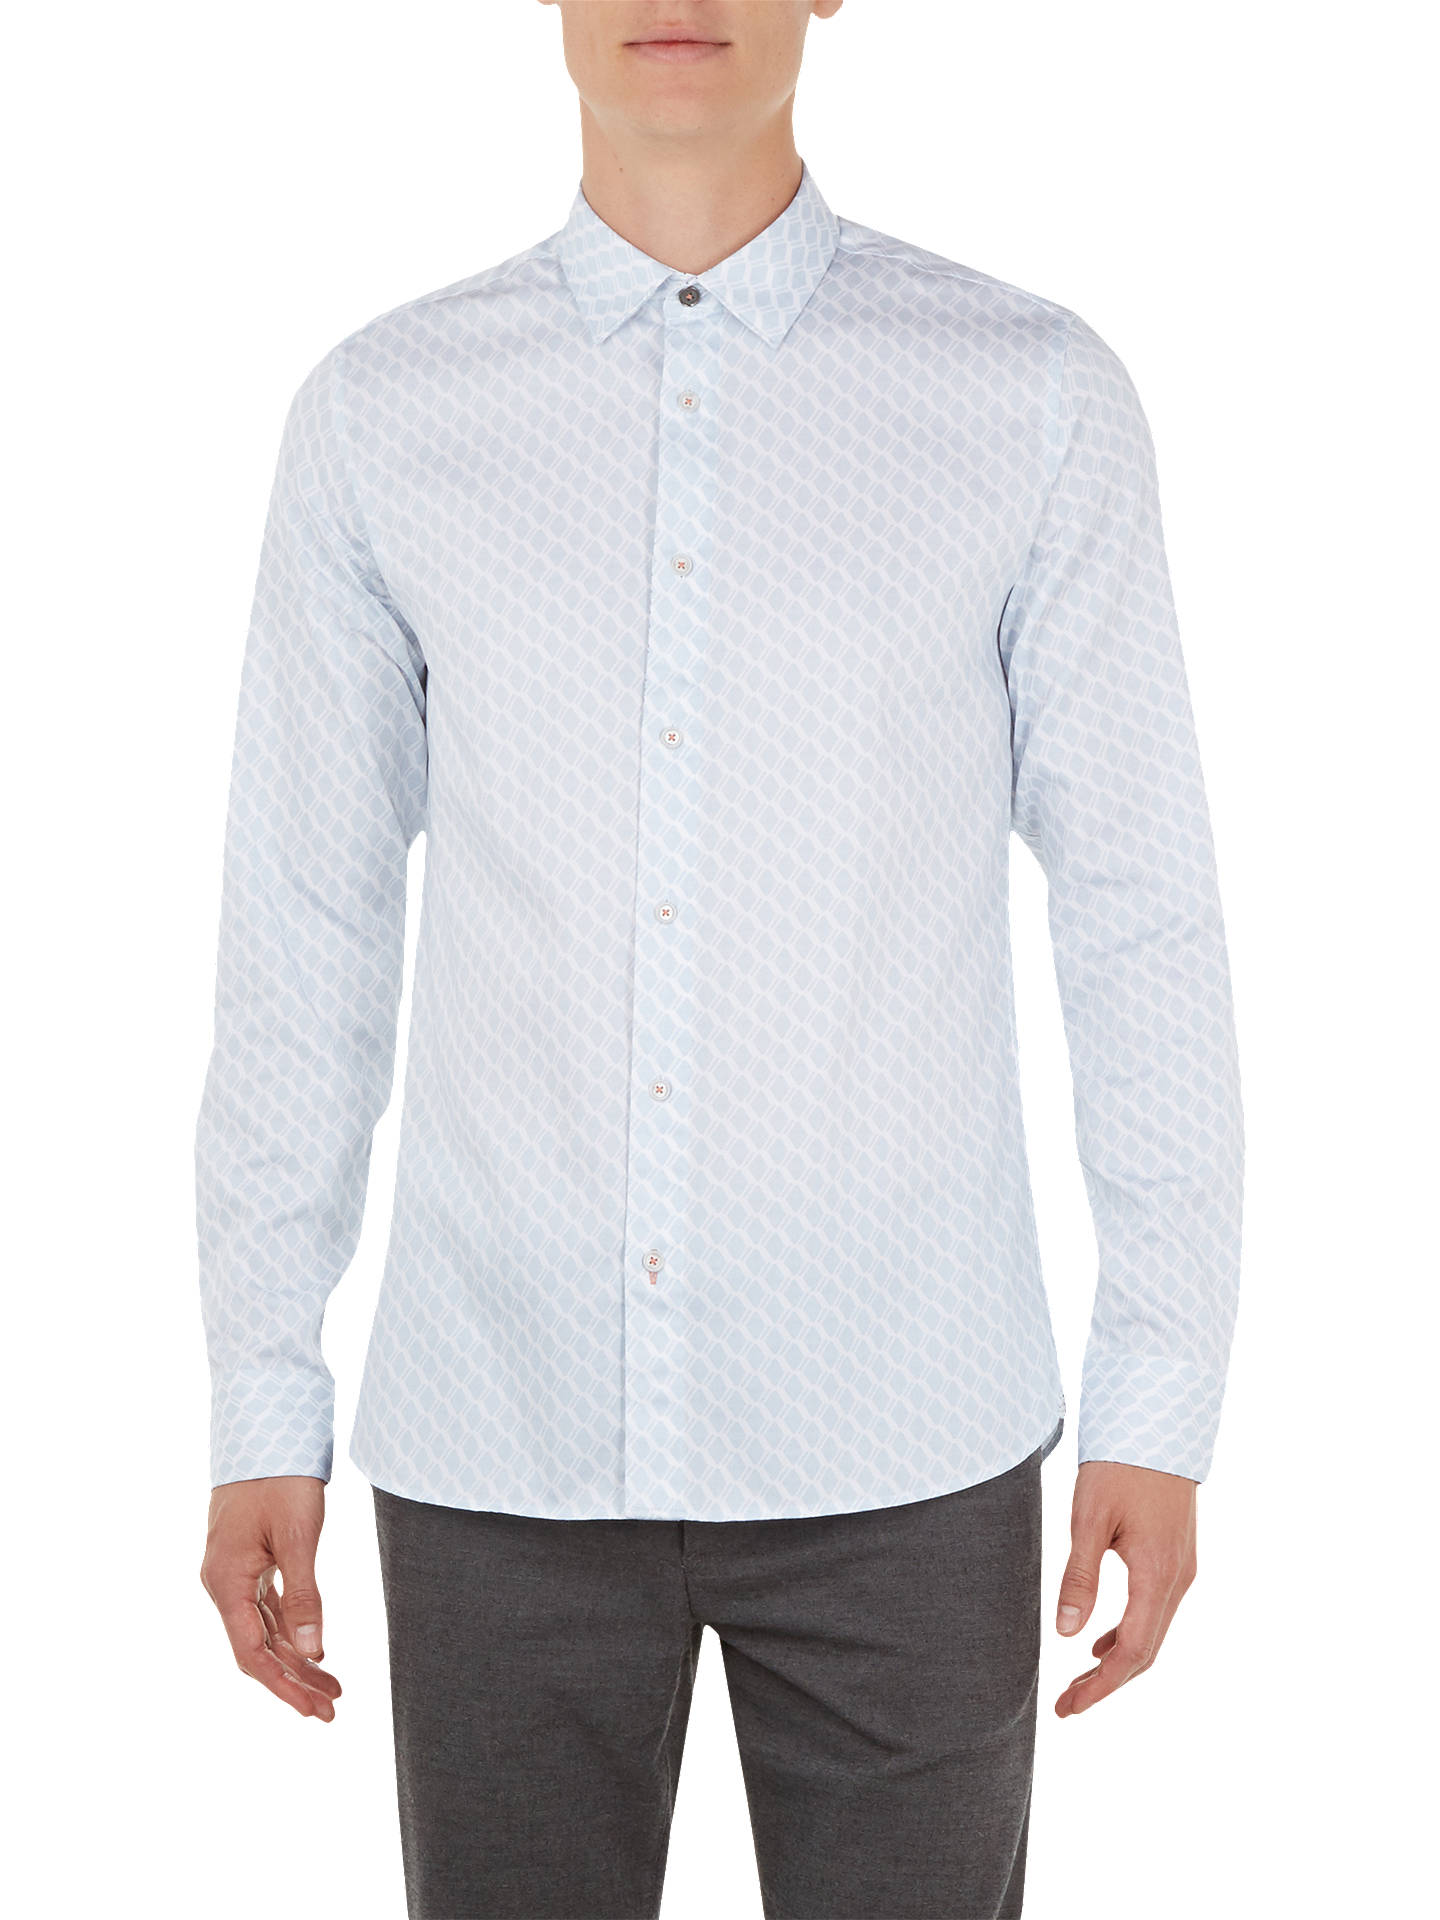 BuyTed Baker Pimlico Long Sleeve Geometric Shirt, Blue Mid, 15 Online at johnlewis.com